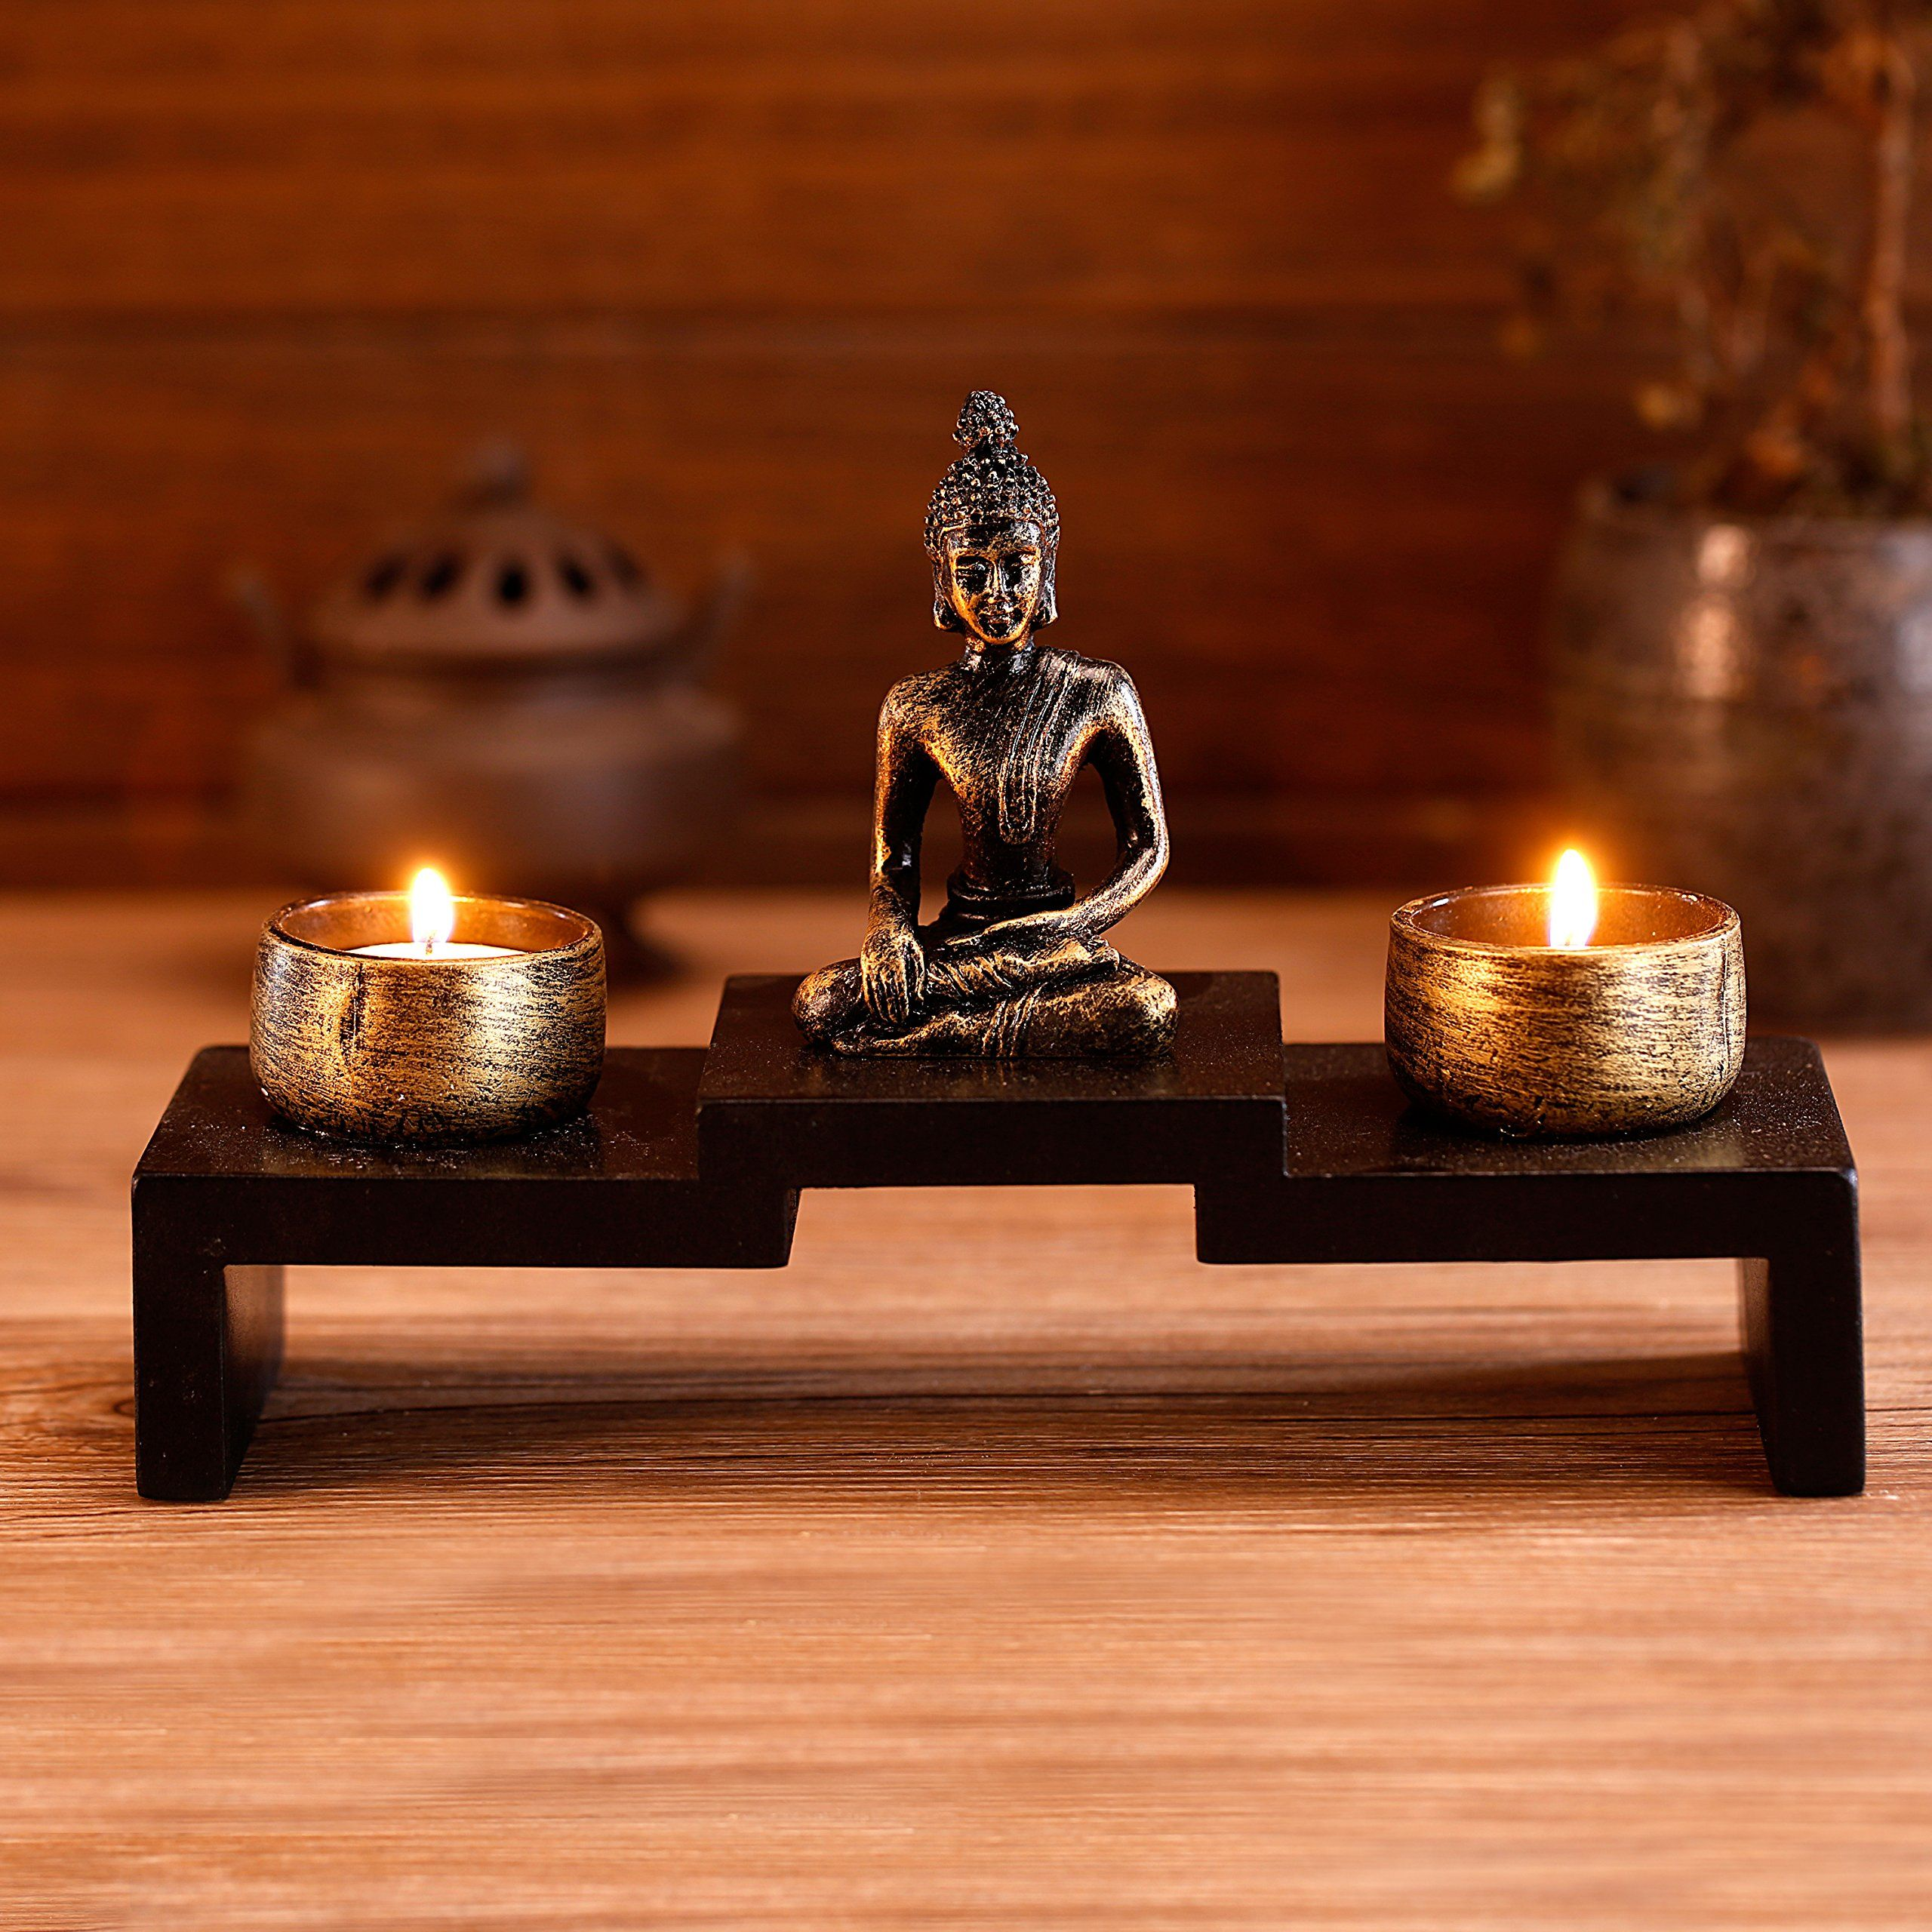 Mini Buddha Statue Zen Decoration with Tealight Candle Holders and